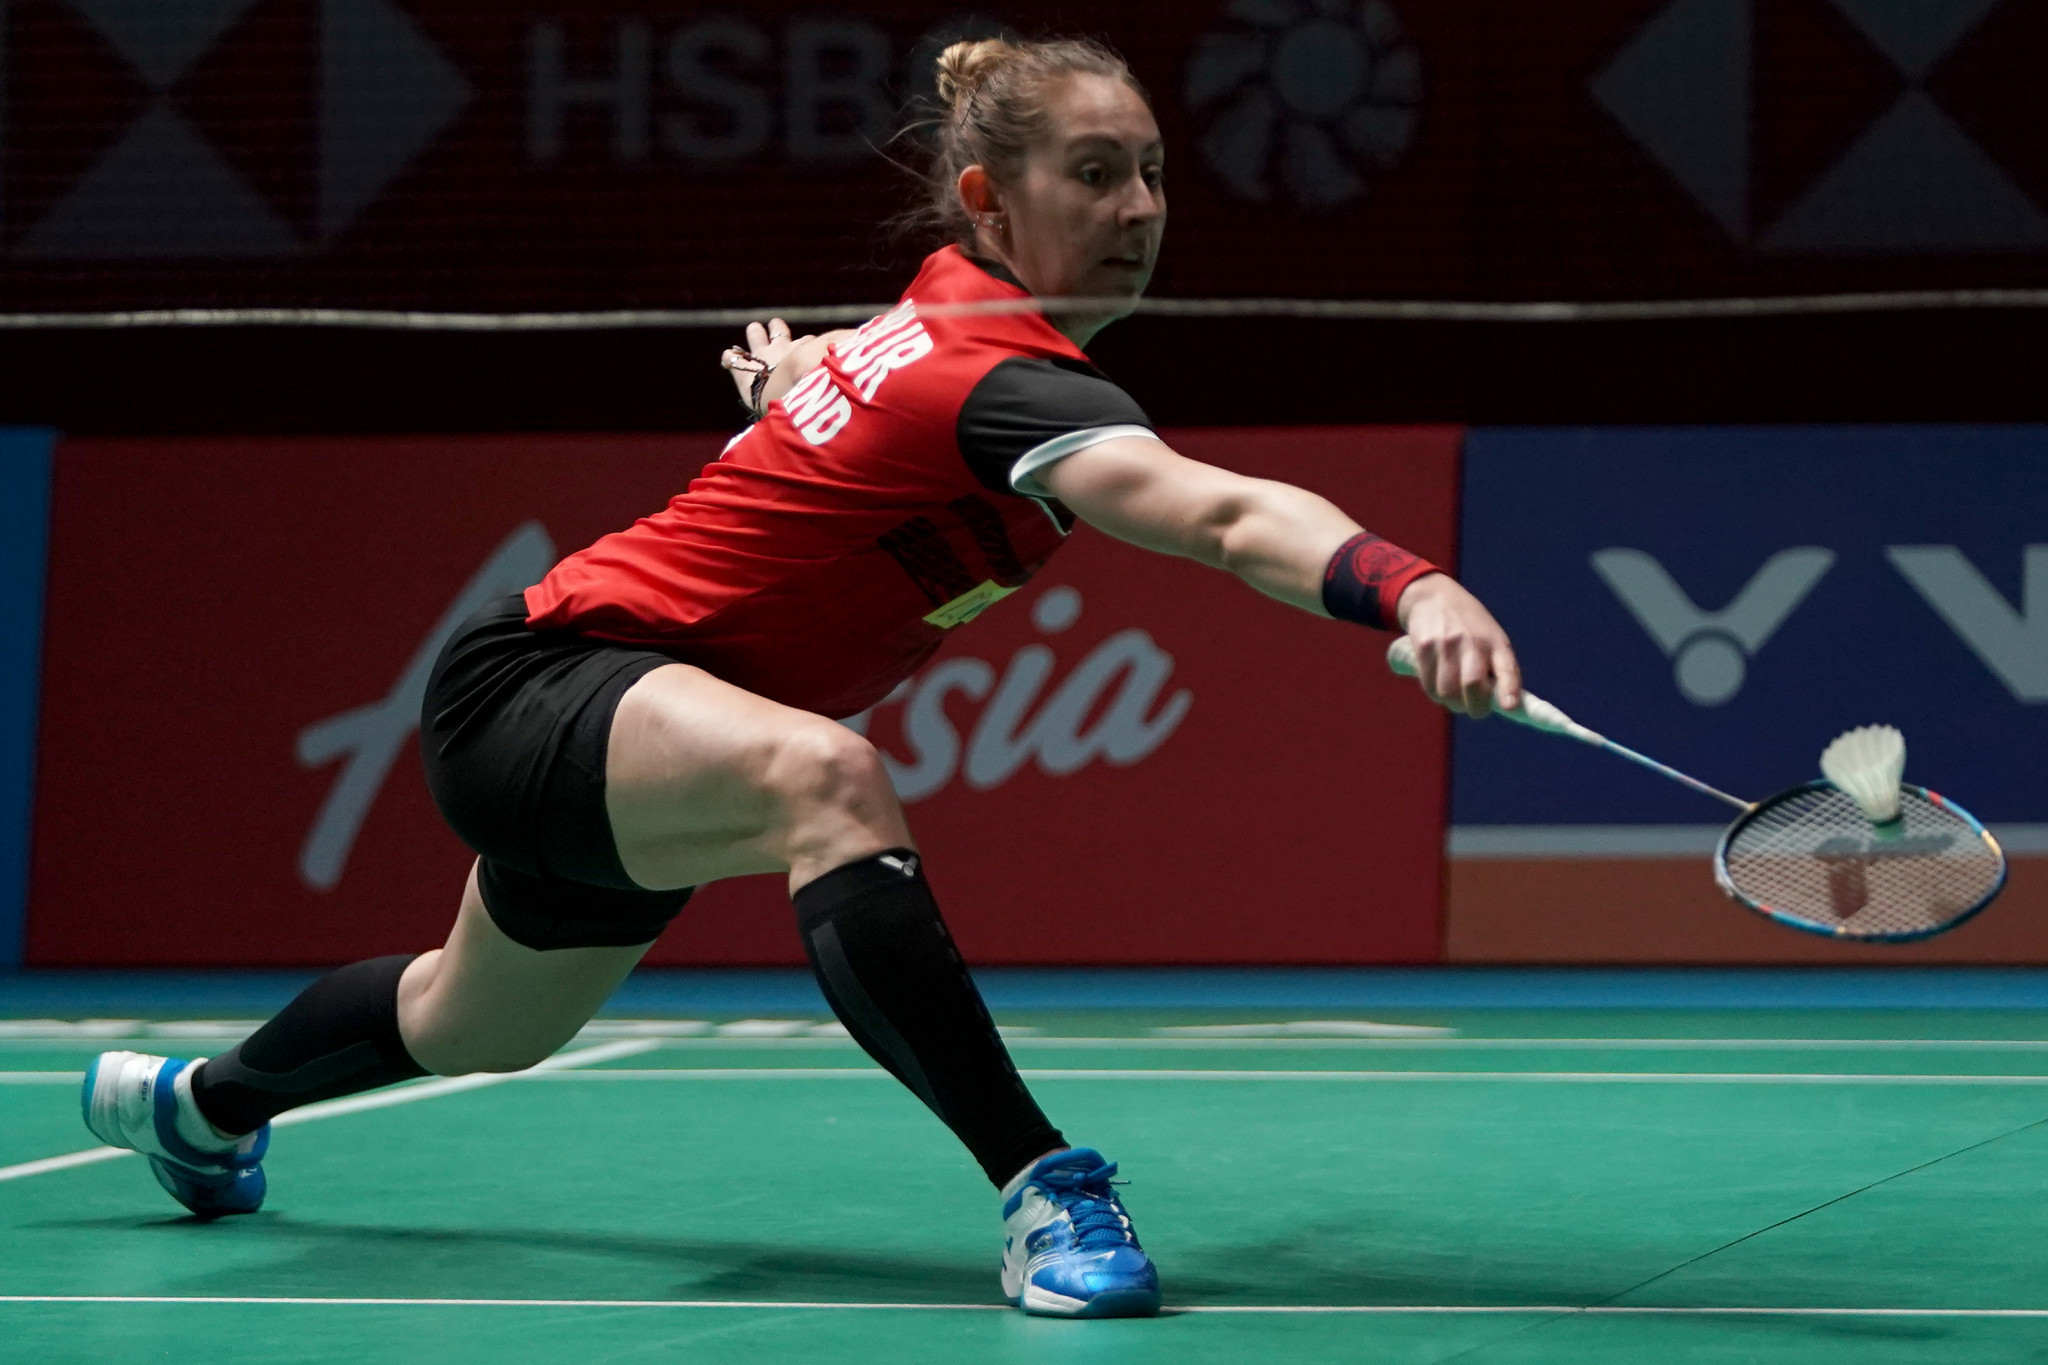 Scotland's Gilmour misses title by a fraction in BWF Russian Open women's final